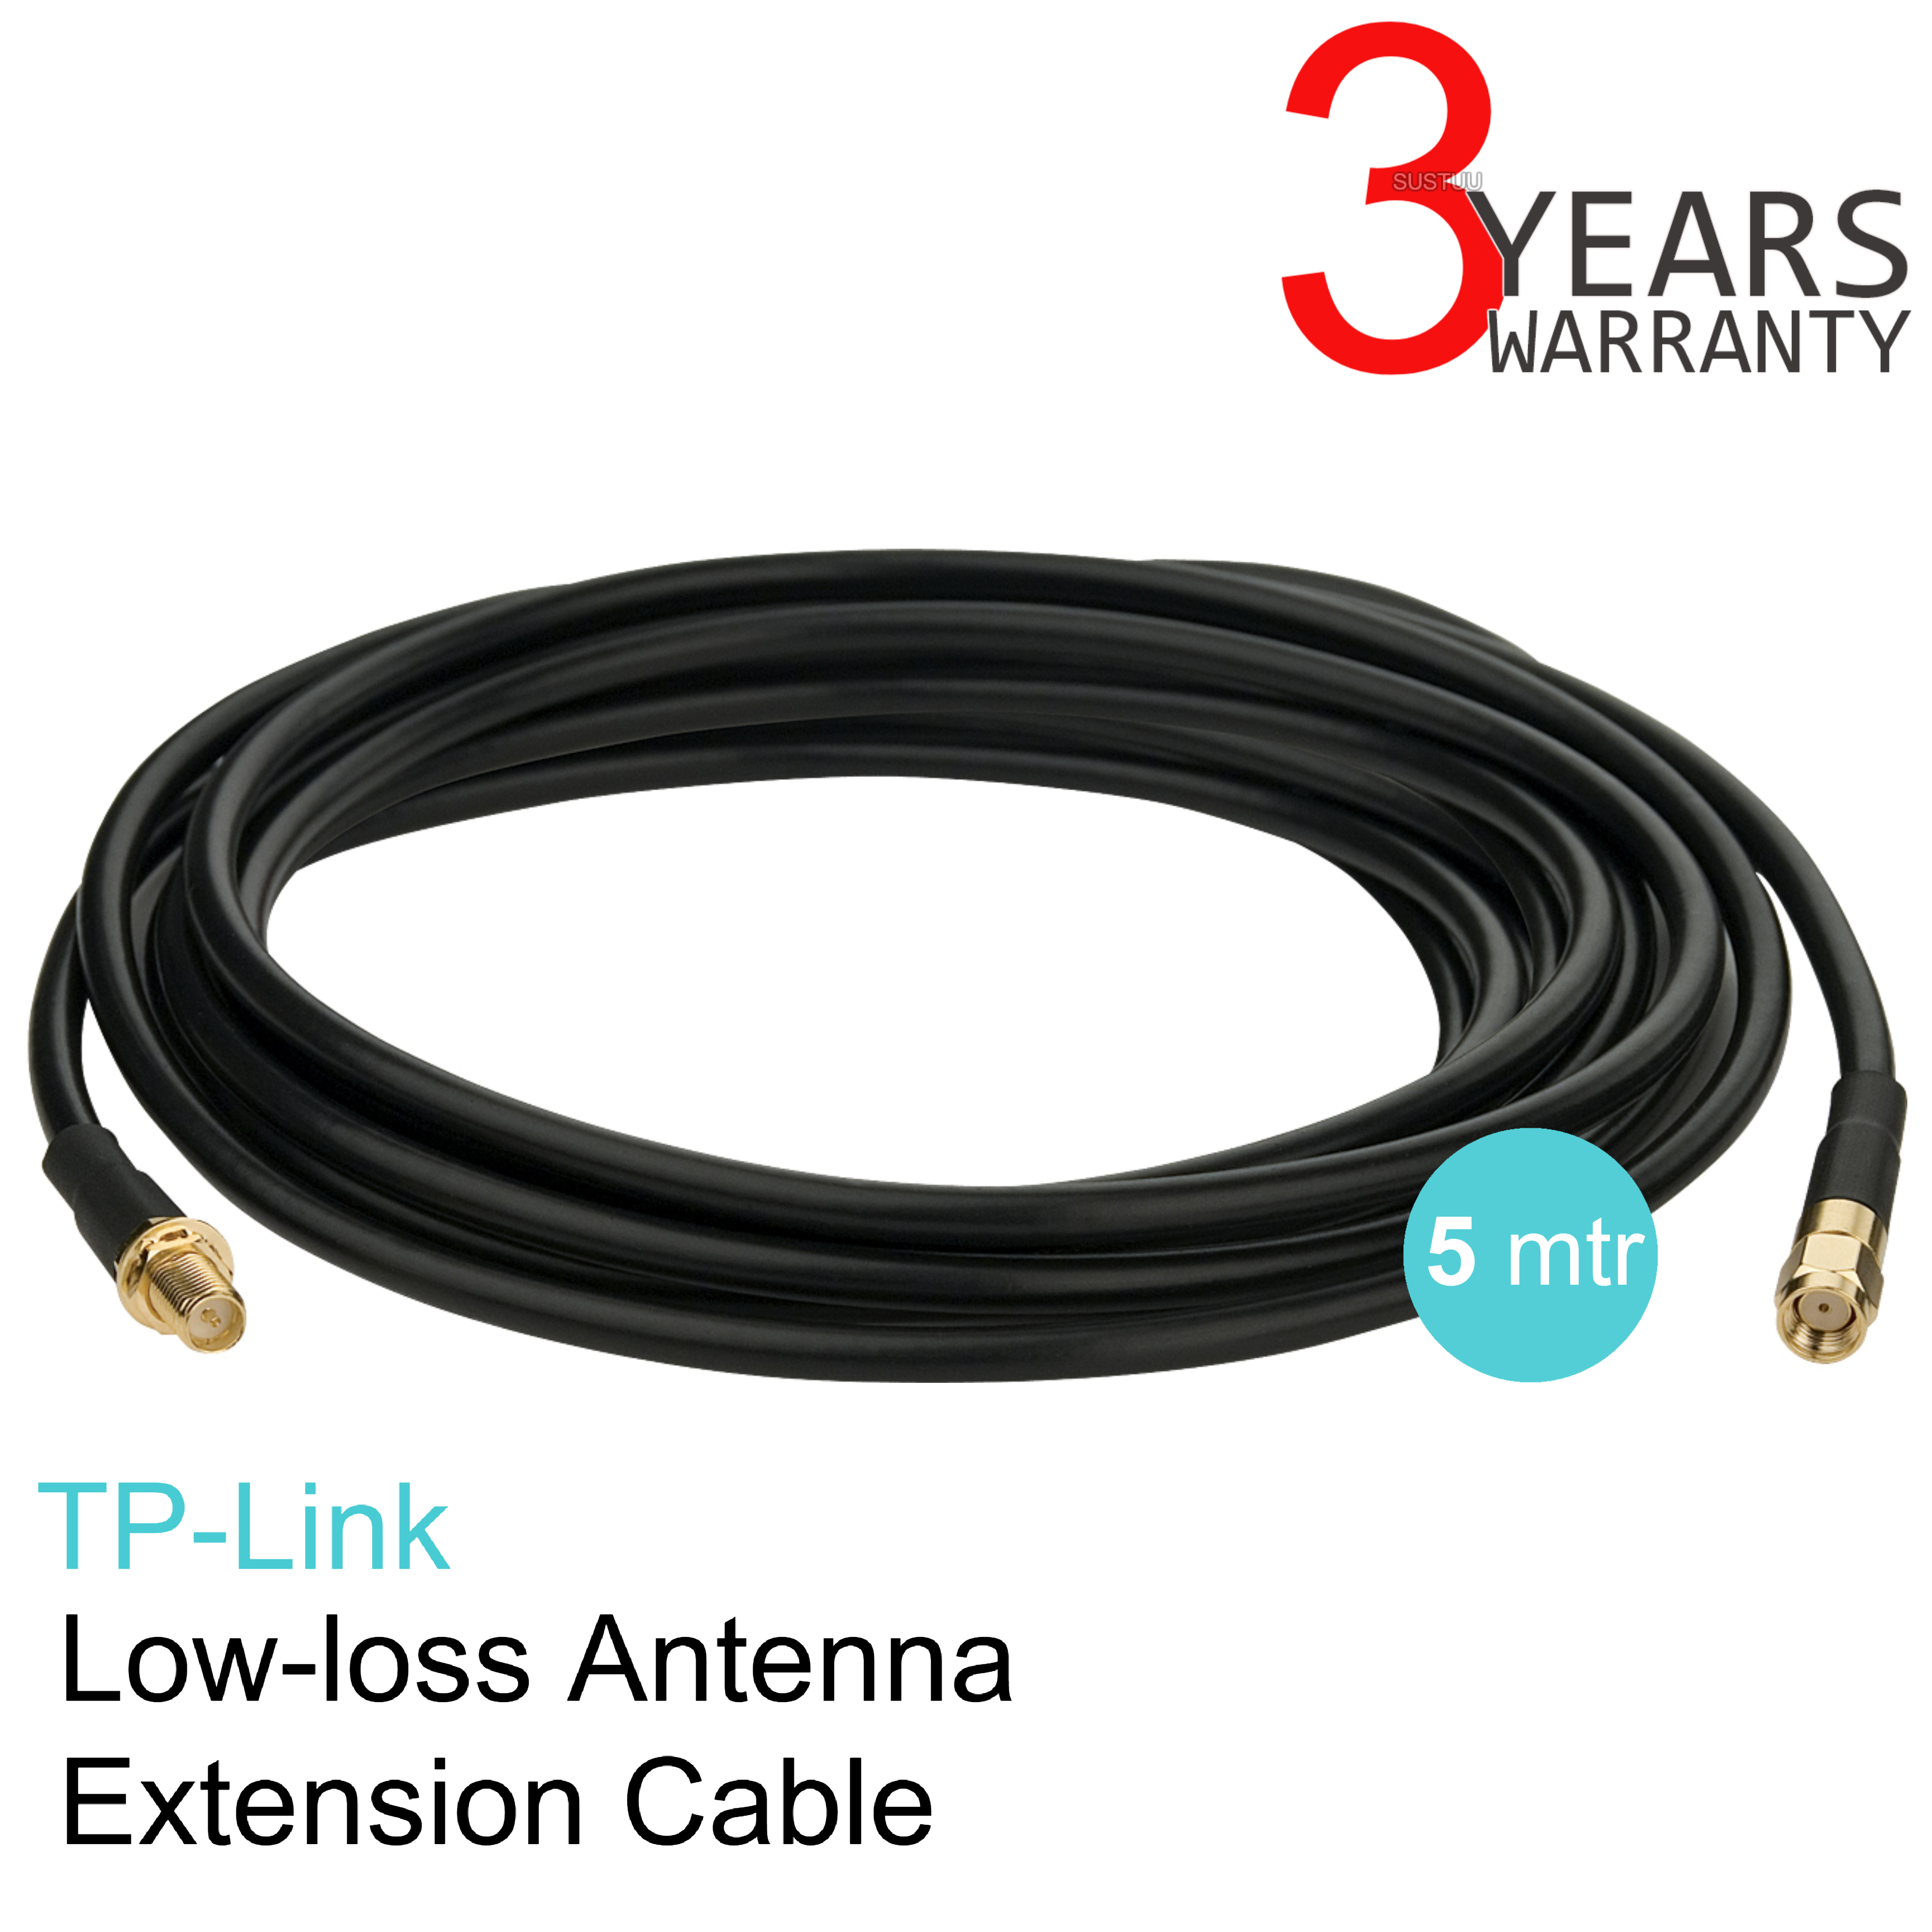 TP-Link TL-ANT24EC5S|Antenna Extension Cable|RP-SMA Male to Female|5 Meters